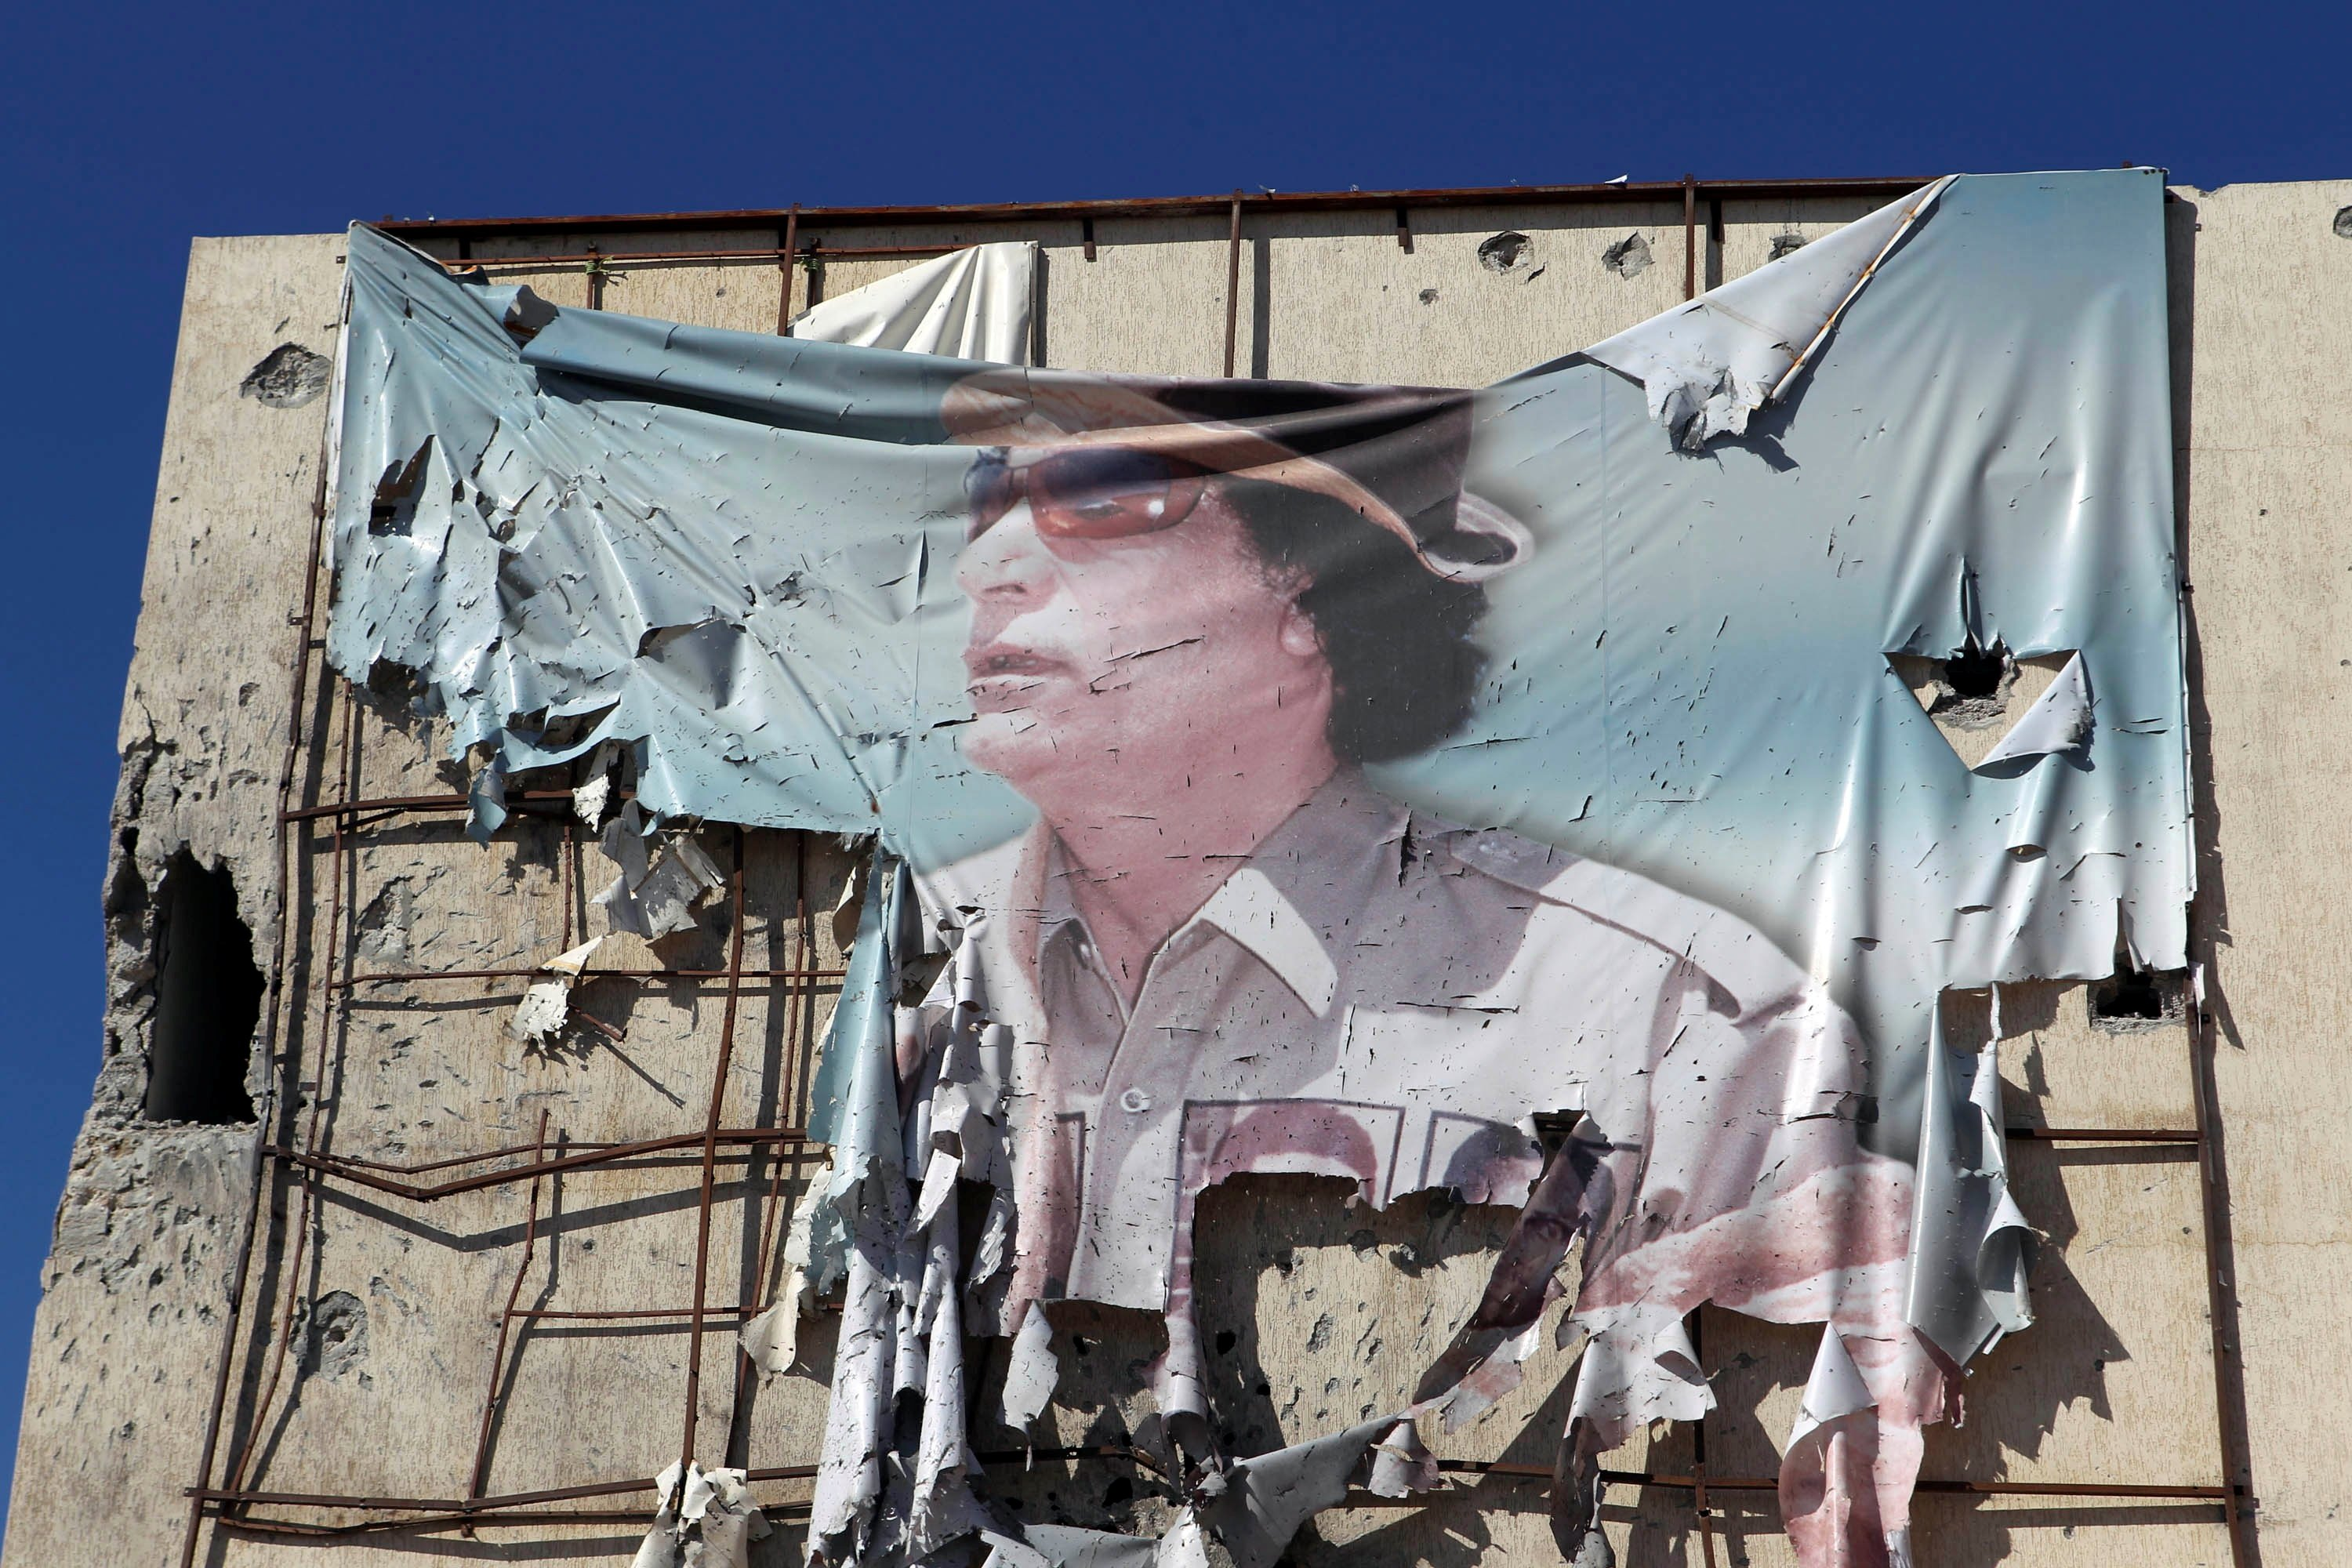 A torn banner showing Muammar Gaddafi on a building during clashes between anti-Gadhafi fighters and Gadhafi forces, Sirte, Libya, Oct. 12, 2011. (Reuters Photo)